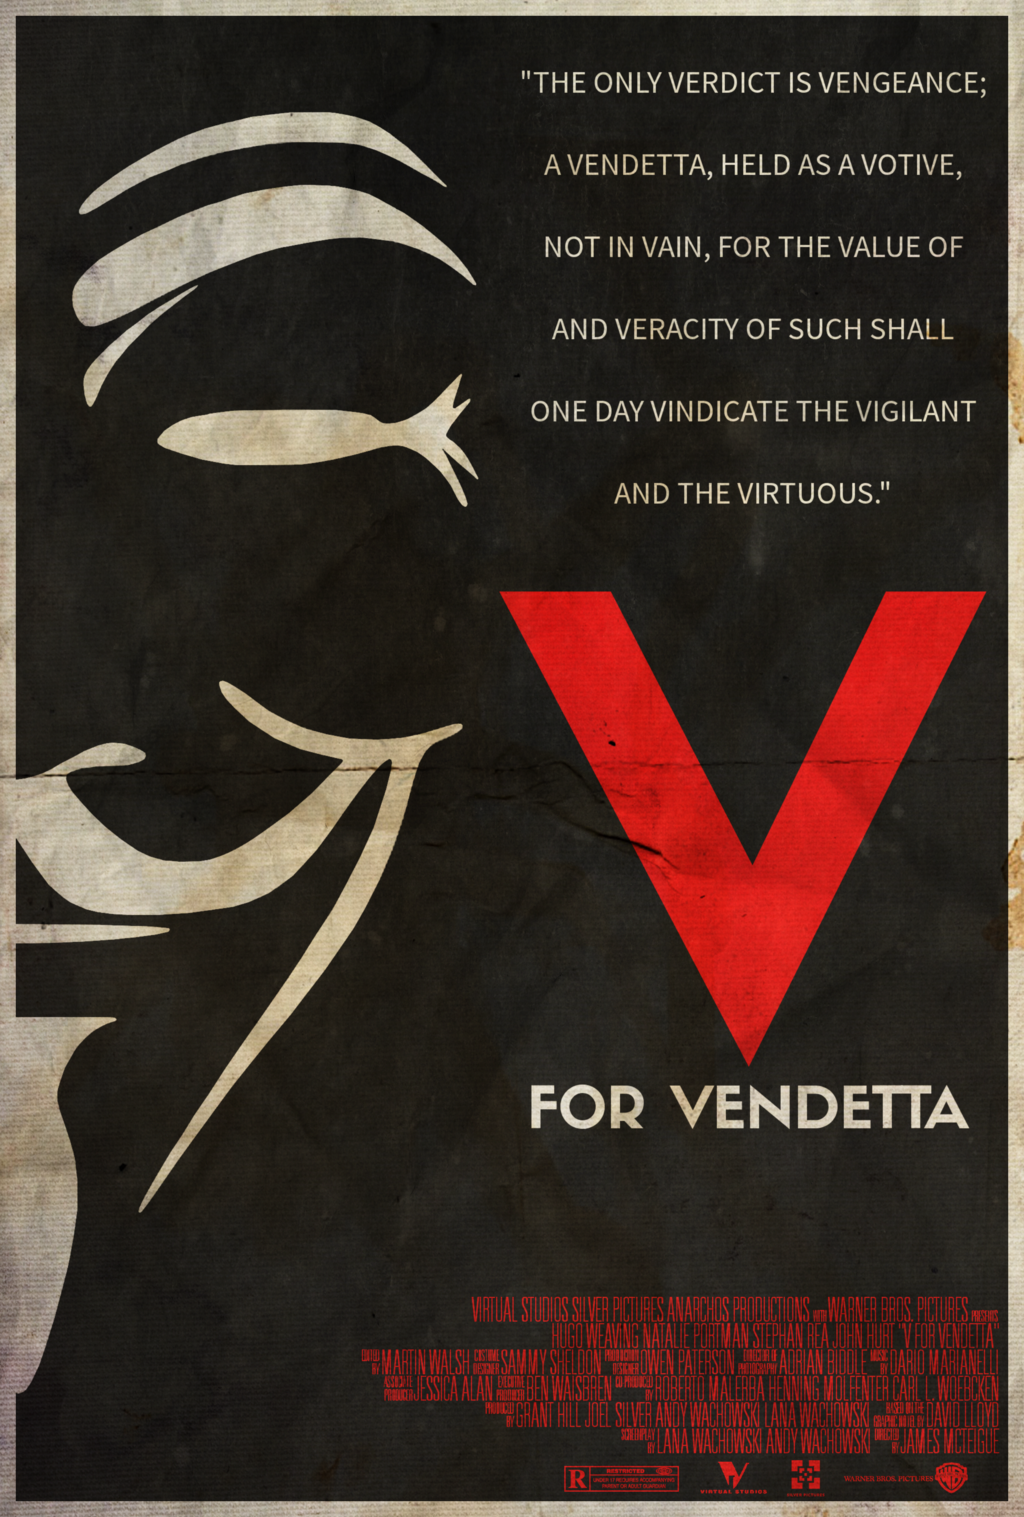 Pin By Luminetik On Minimal Movie Posters V For Vendetta Poster V For Vendetta V For Vendetta Movie